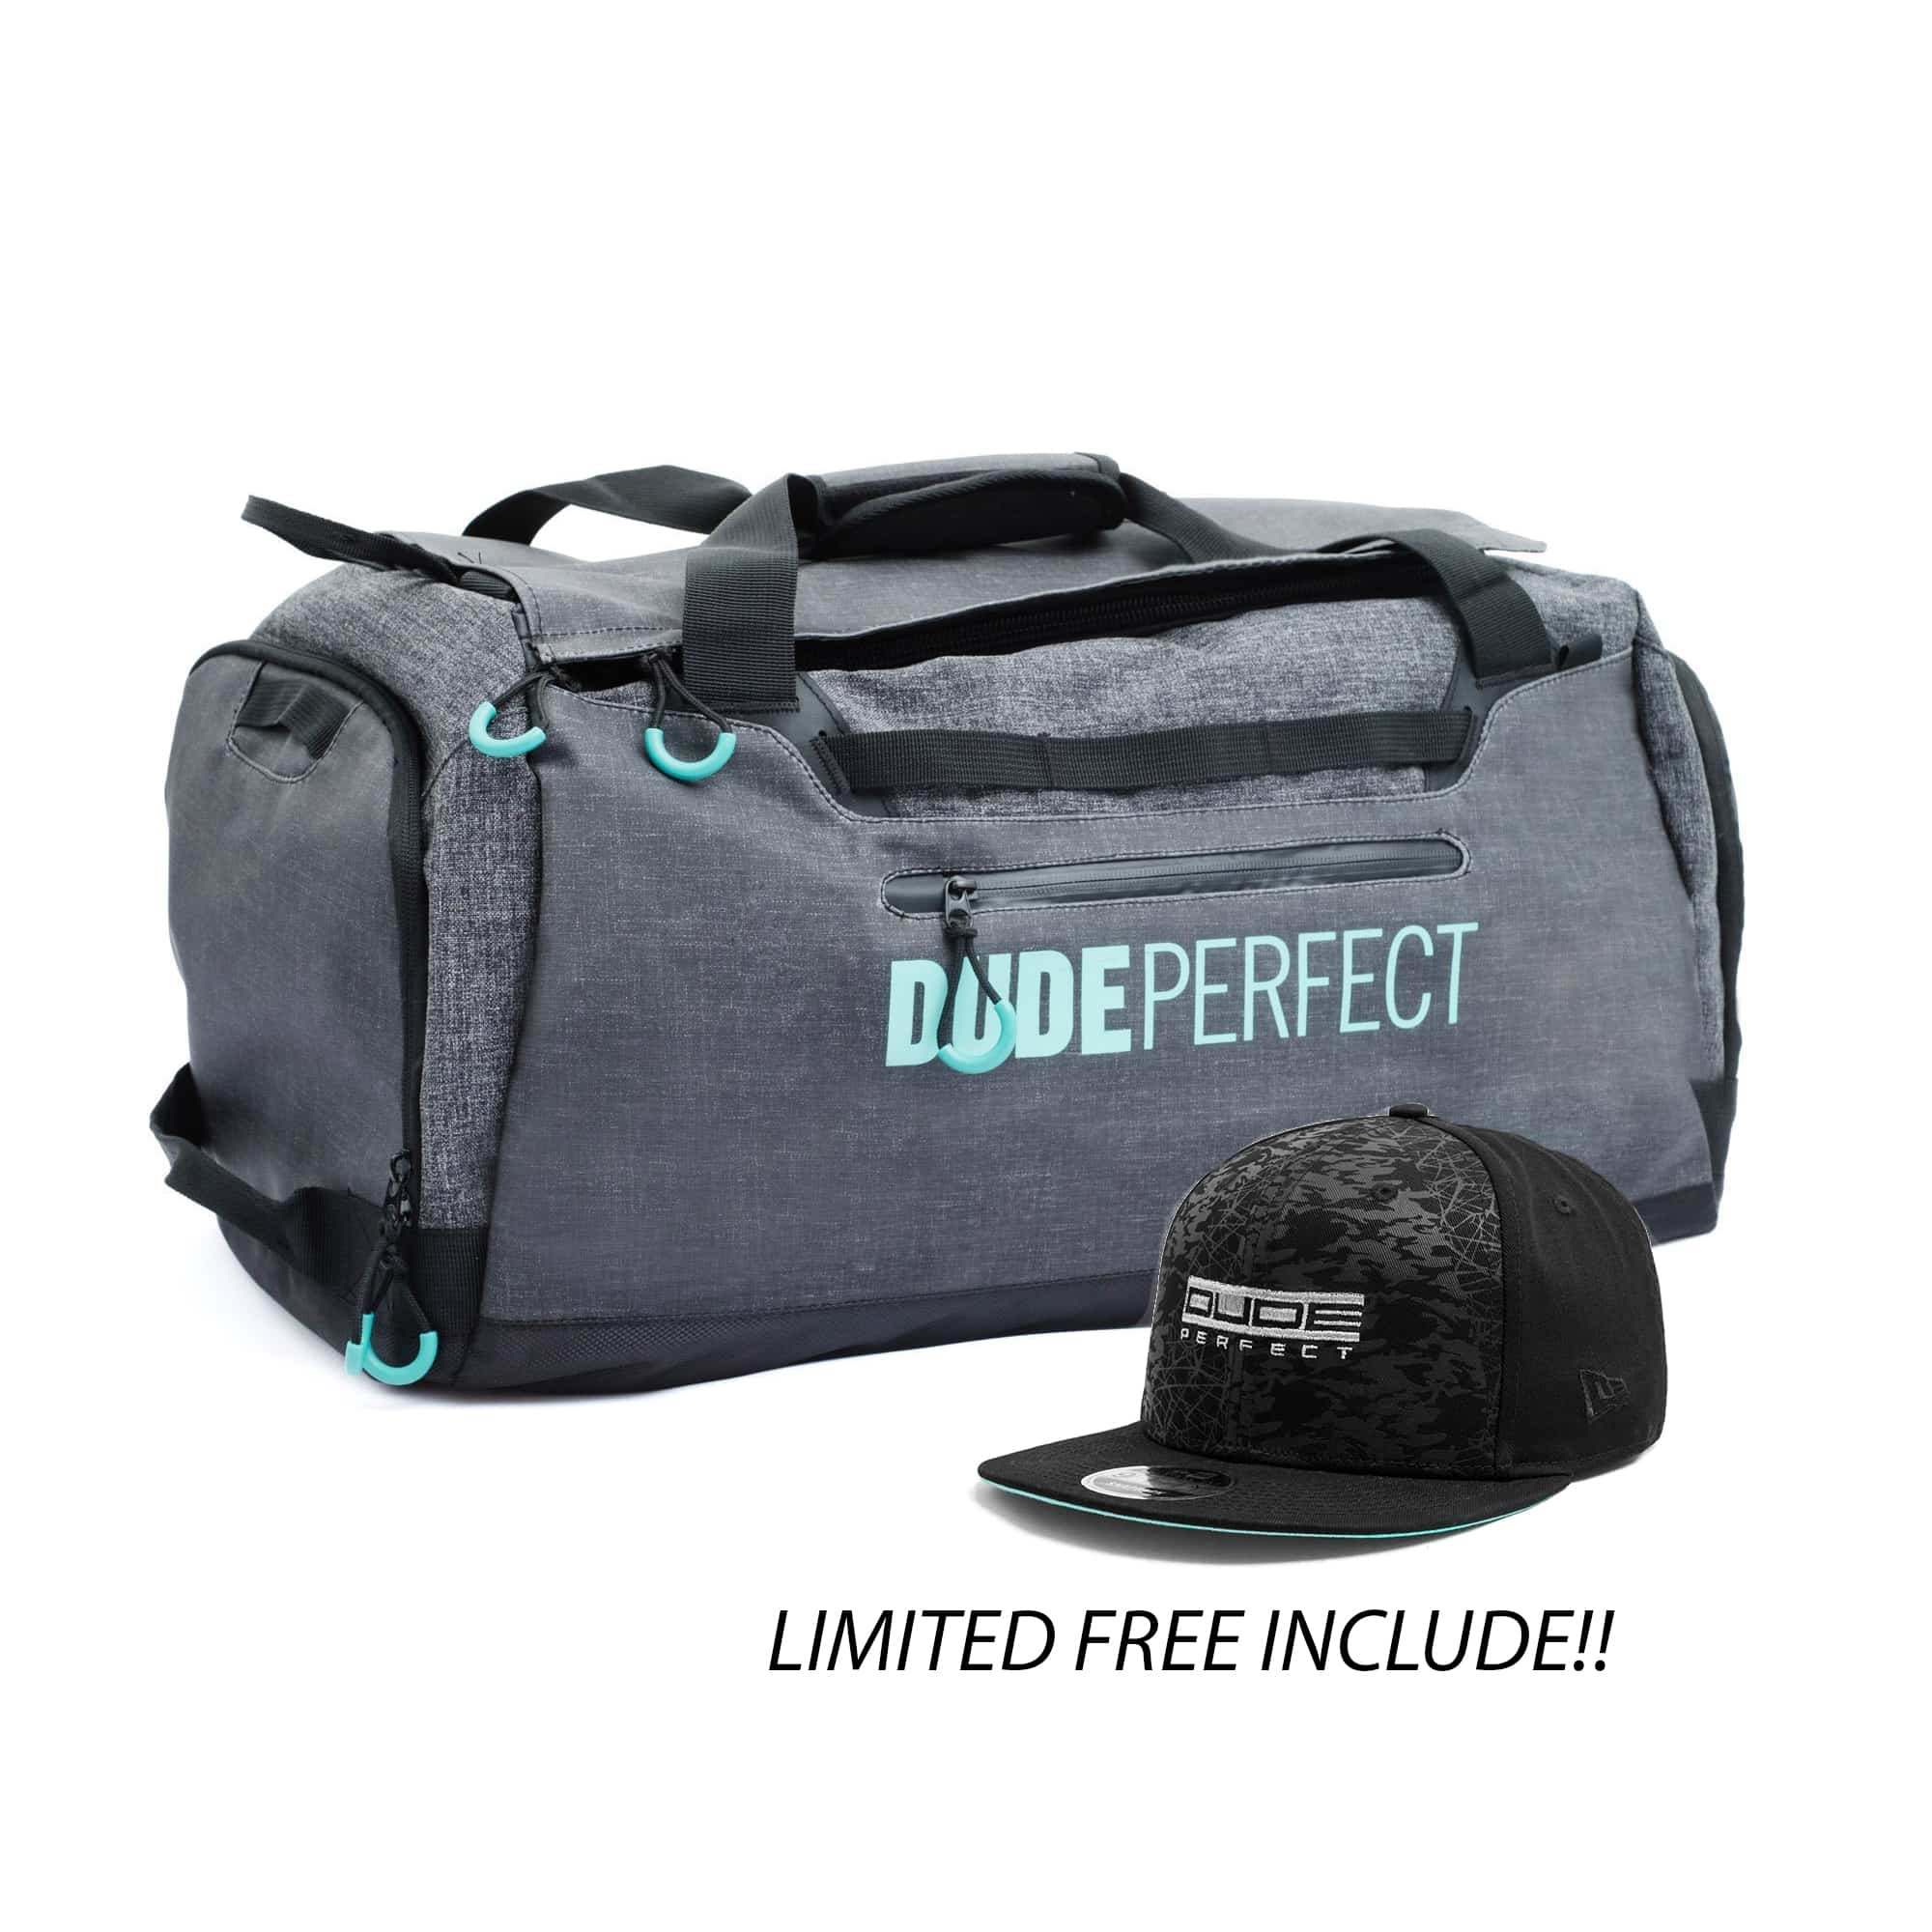 Dude Perfect Rivalry Duffel Bag - Limited Free Include!  cd2cc204f